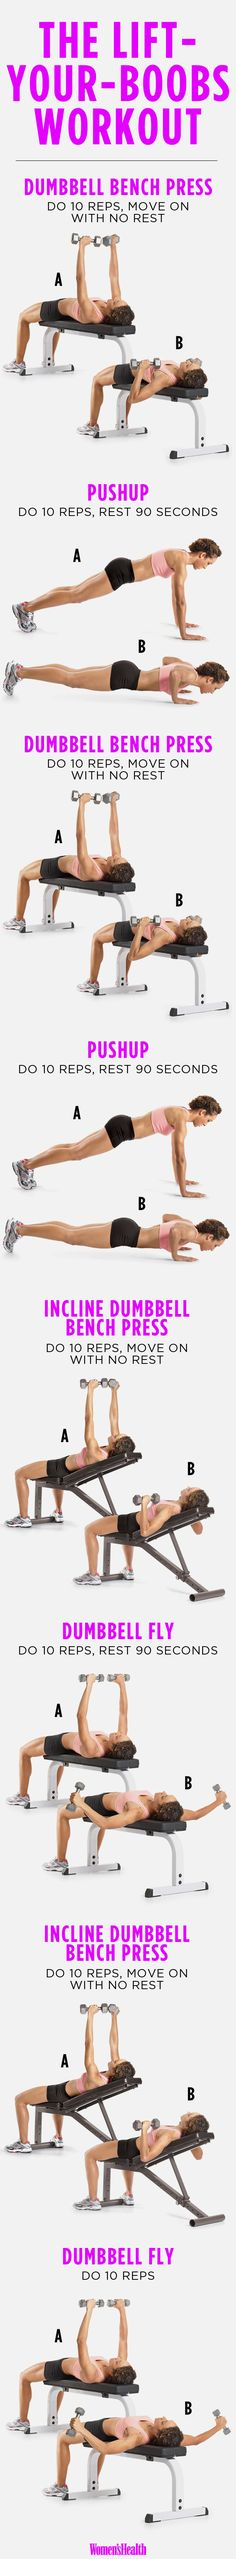 Covet for workout plans? Try and think on these key fitness workout ideas ref 1457505021 immediately. Fitness Motivation, Fitness Diet, Health Fitness, Workout Fitness, Sweat Workout, Cycling Motivation, Triceps Workout, Cycling Workout, Workout Exercises